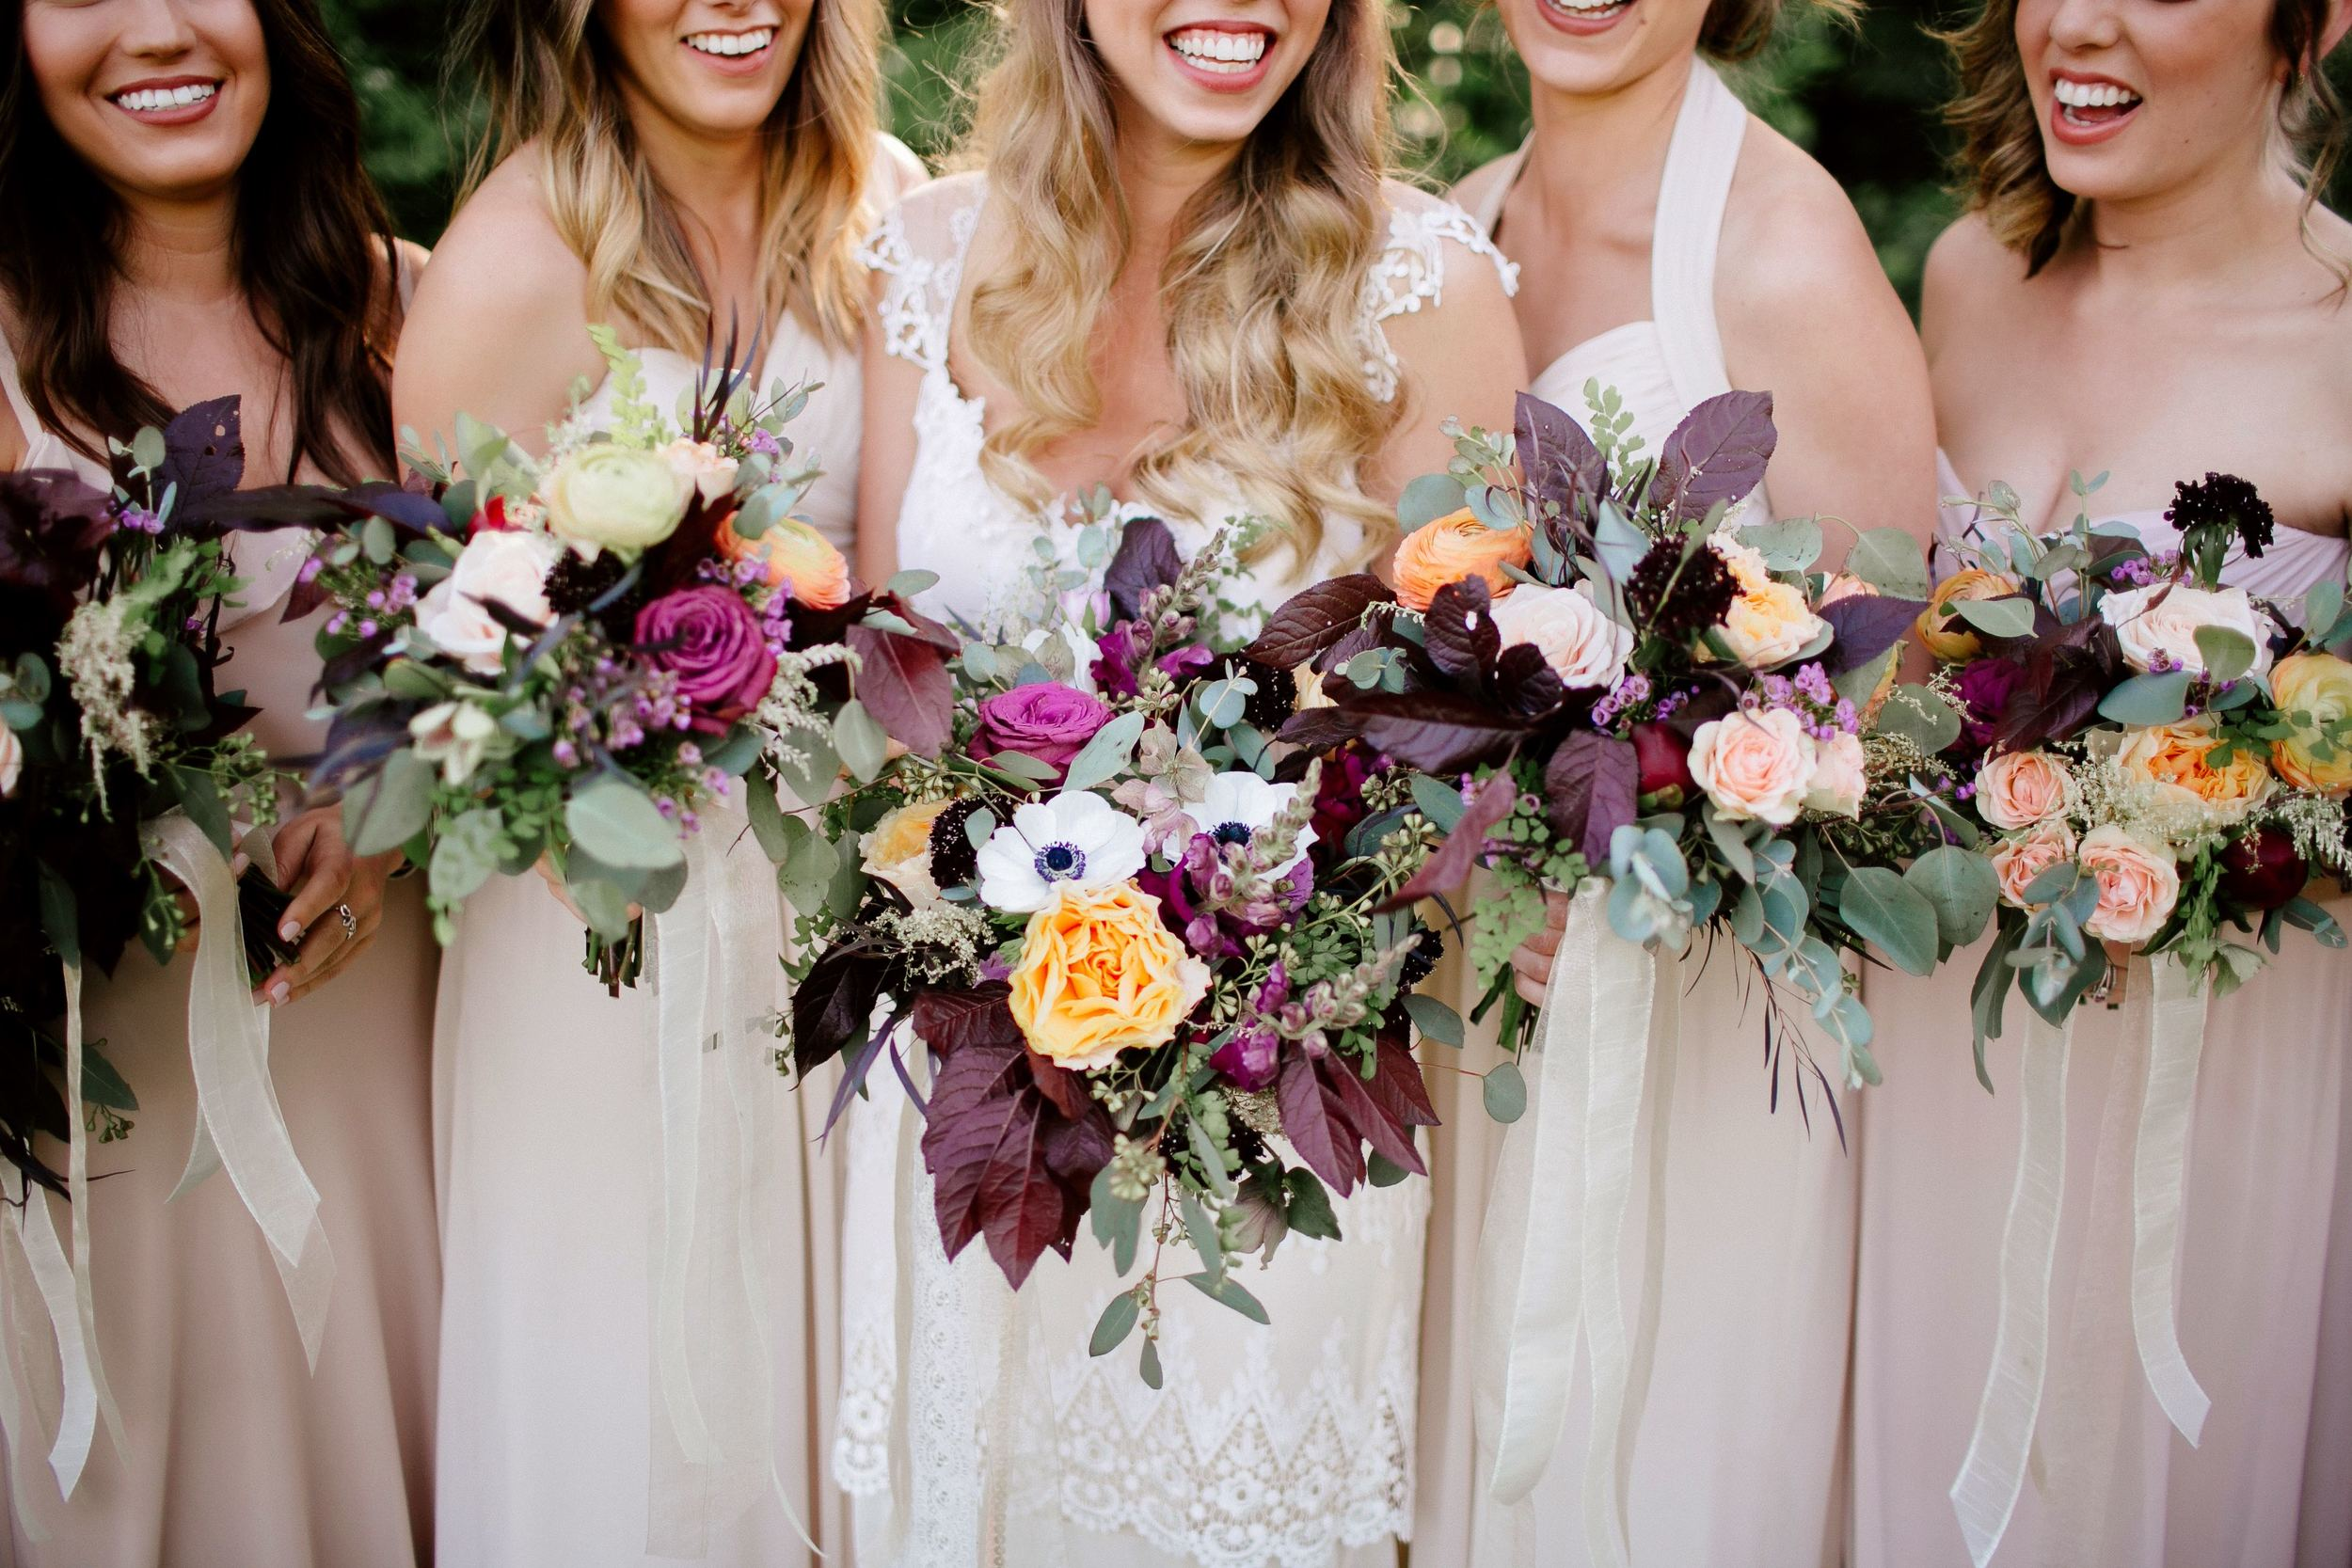 Bohemian bridal party with florals in lavender, peach, and maroon